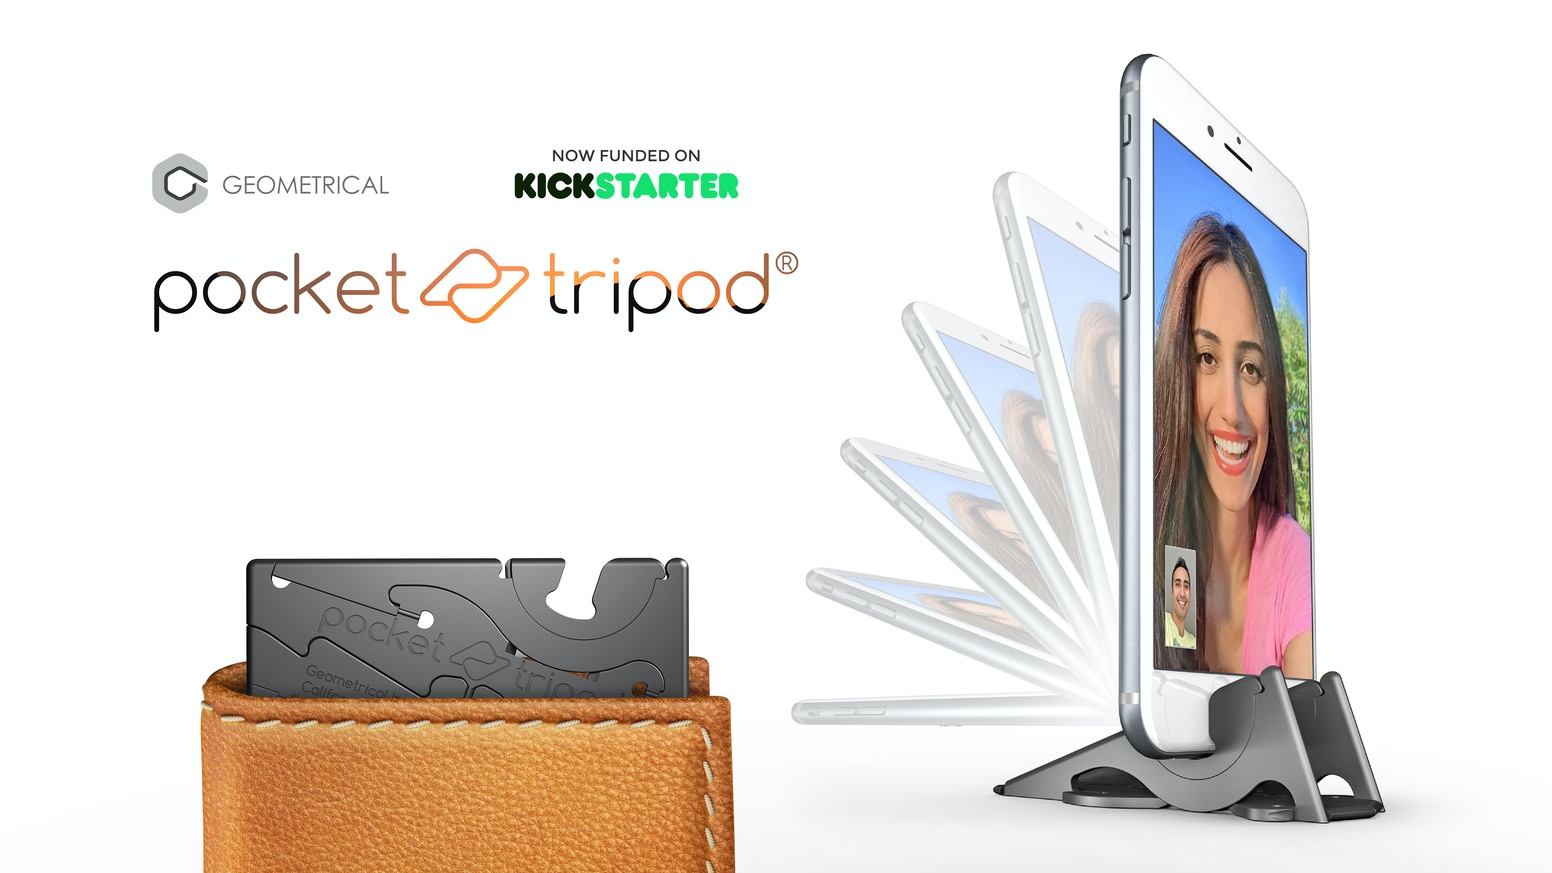 A tripod that works with Android and iPhone cases. The Pocket Tripod is a card-size tripod for your phone that can adjust to any angle.